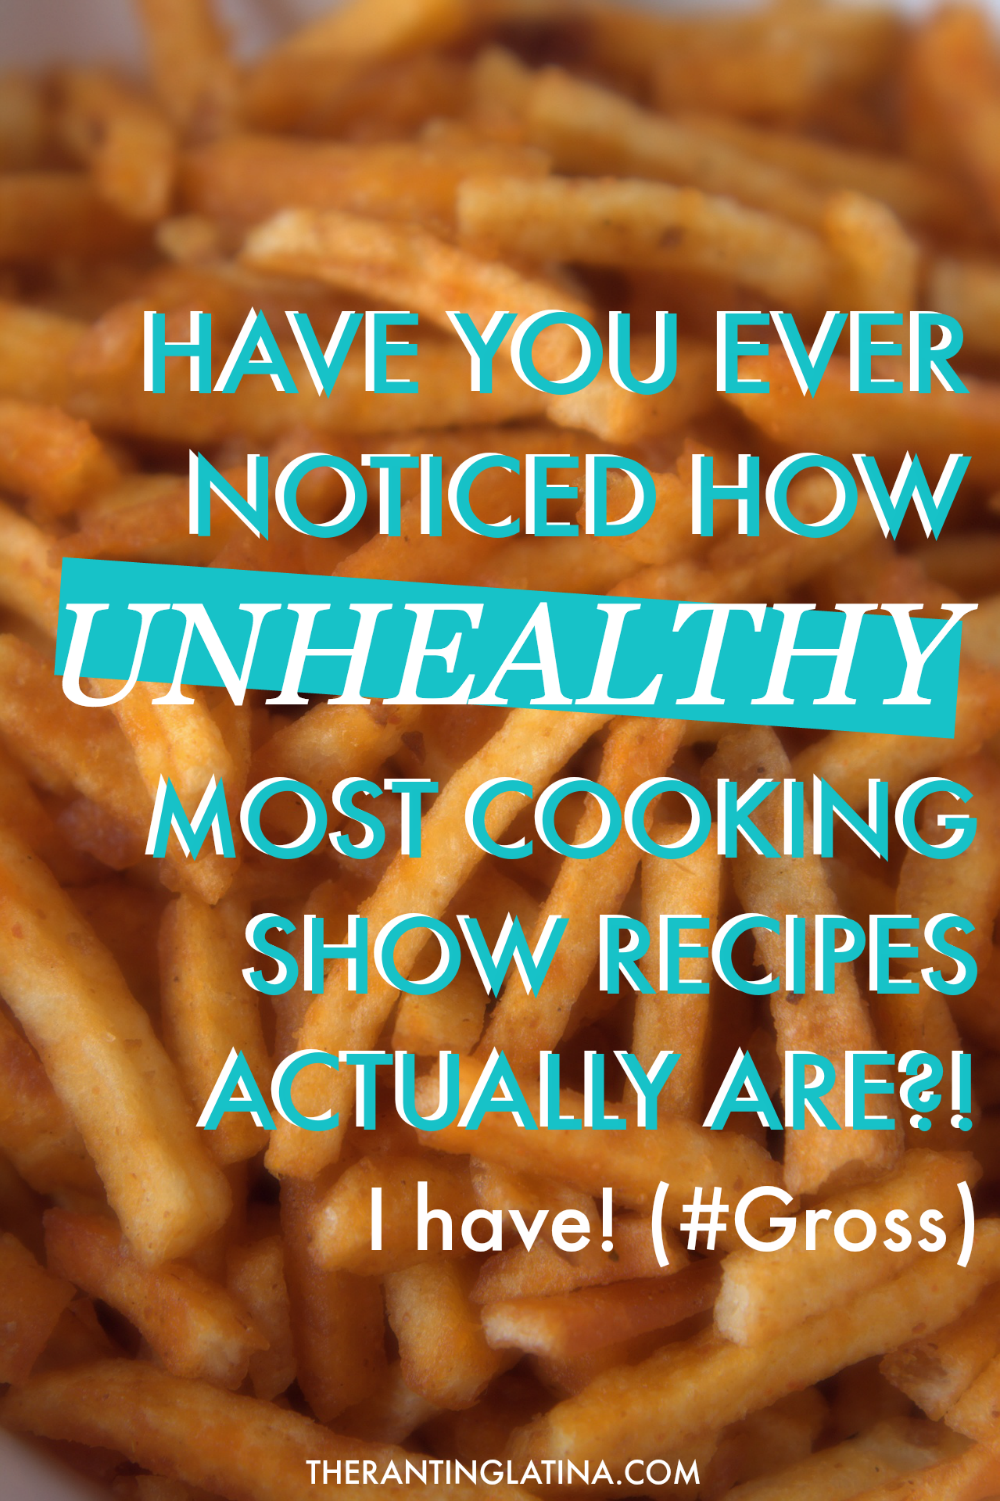 Cooking Shows Should Feature More Truly Healthy Recipes